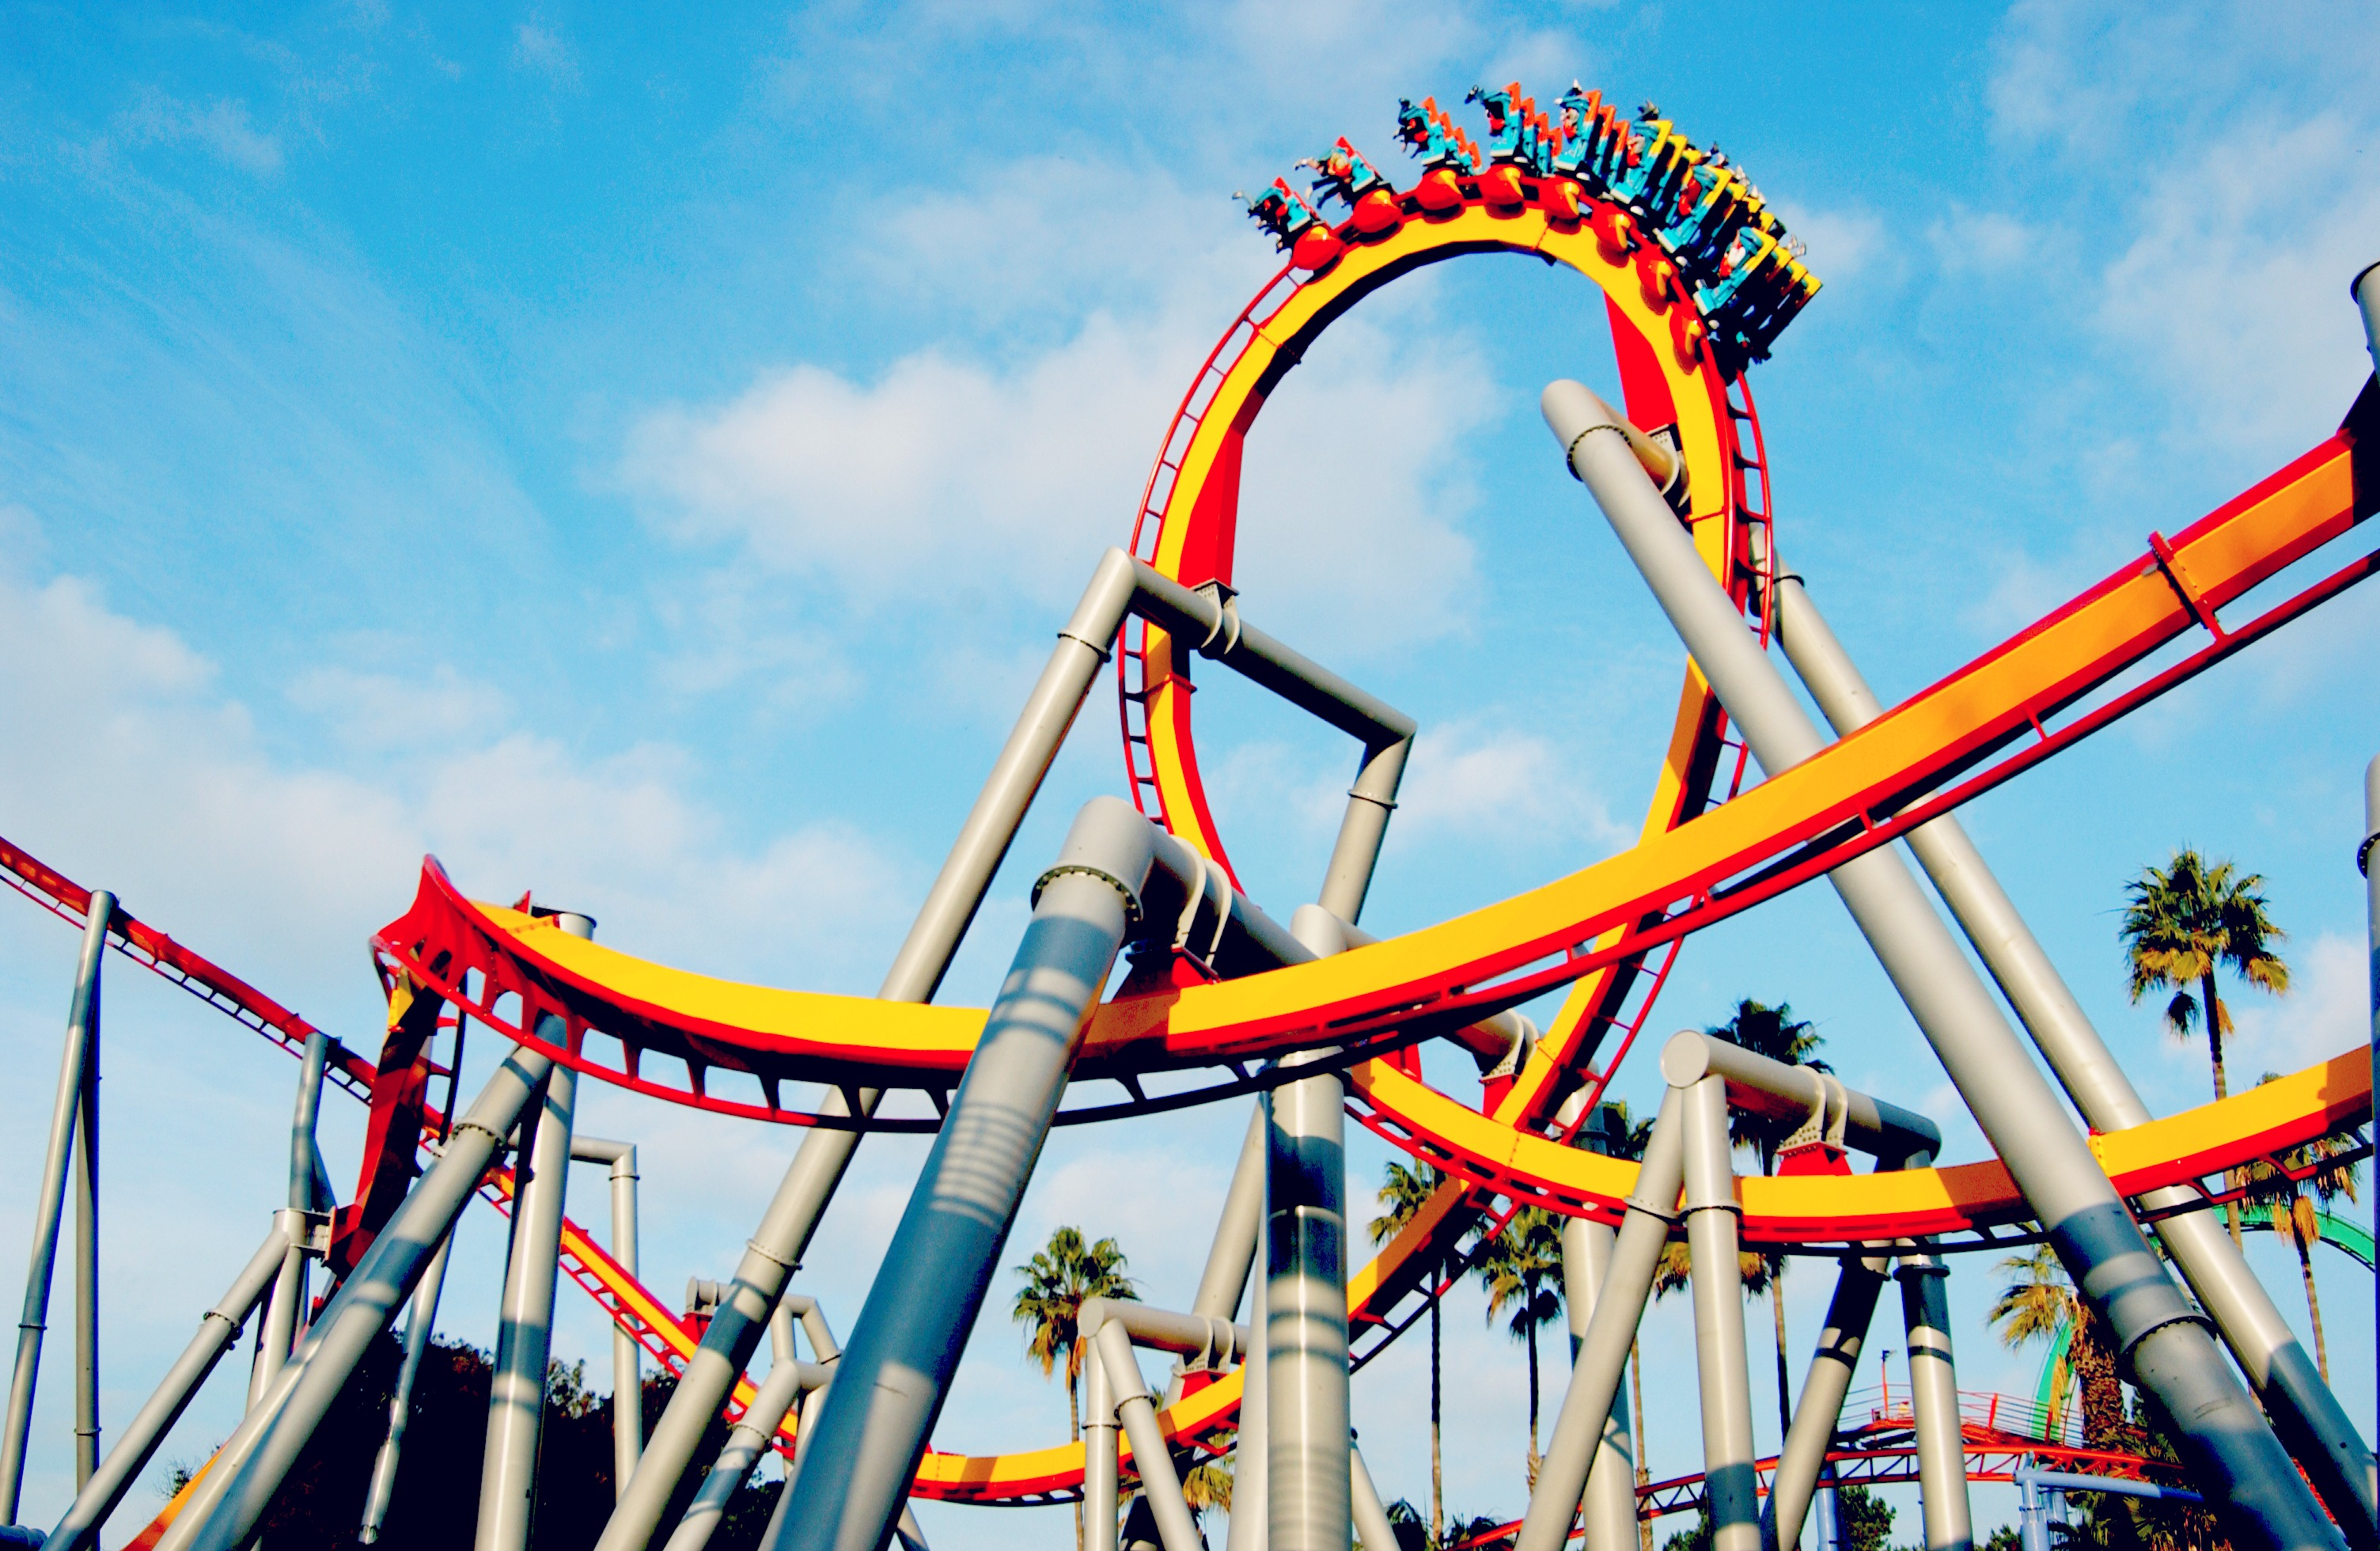 short essay on a visit to an amusement park Essay amusement park a to visit december 10 br ambedkar short essay about myself teacher scholarship essay canine astrocytic tumors a comparative review essay.